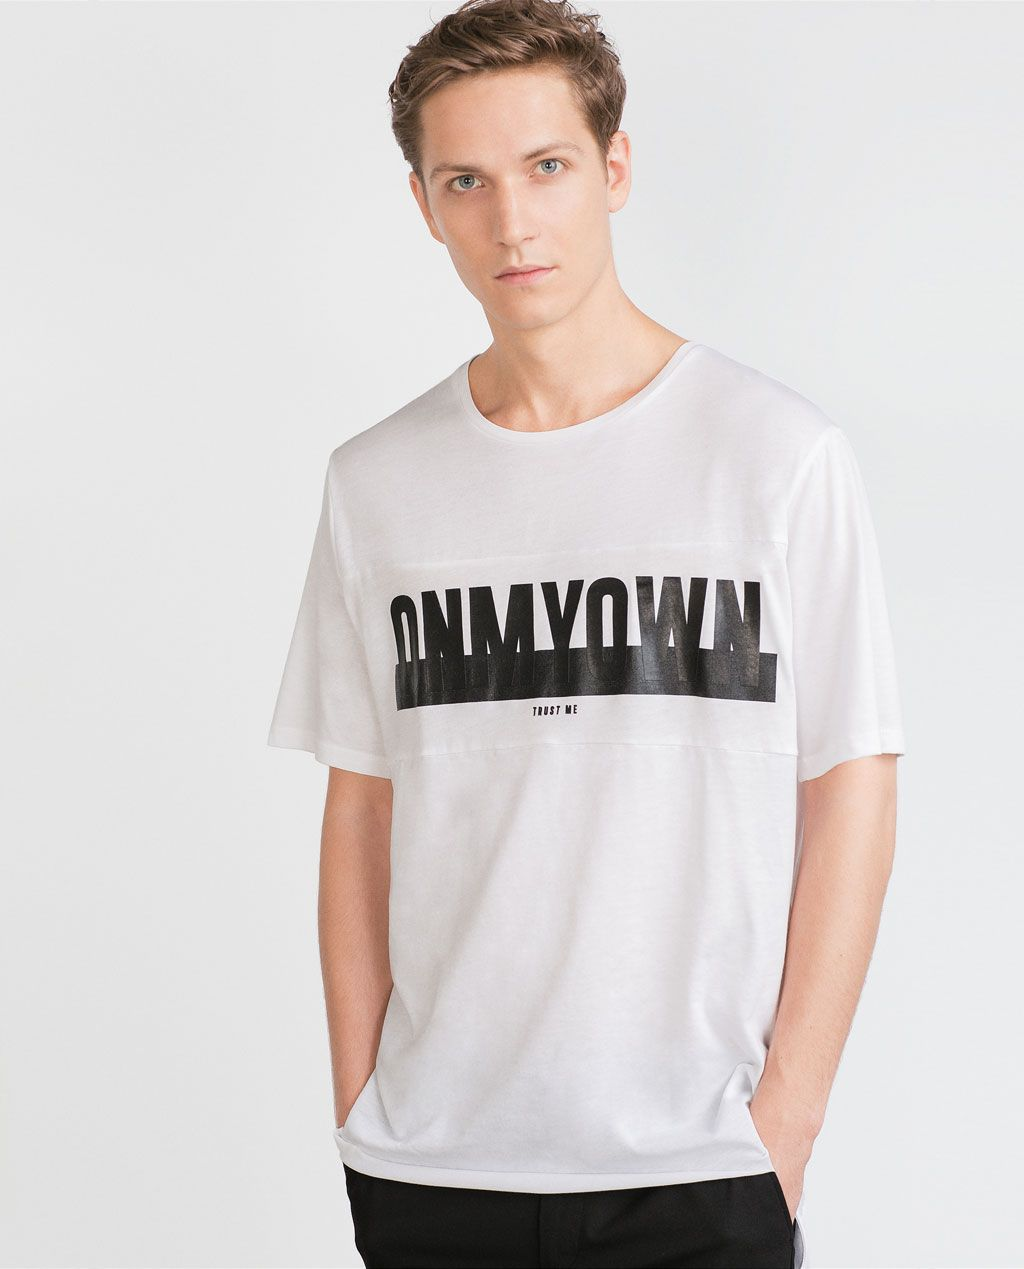 PRINTED LETTERS T - SHIRT - T - shirts - MAN | ZARA United States